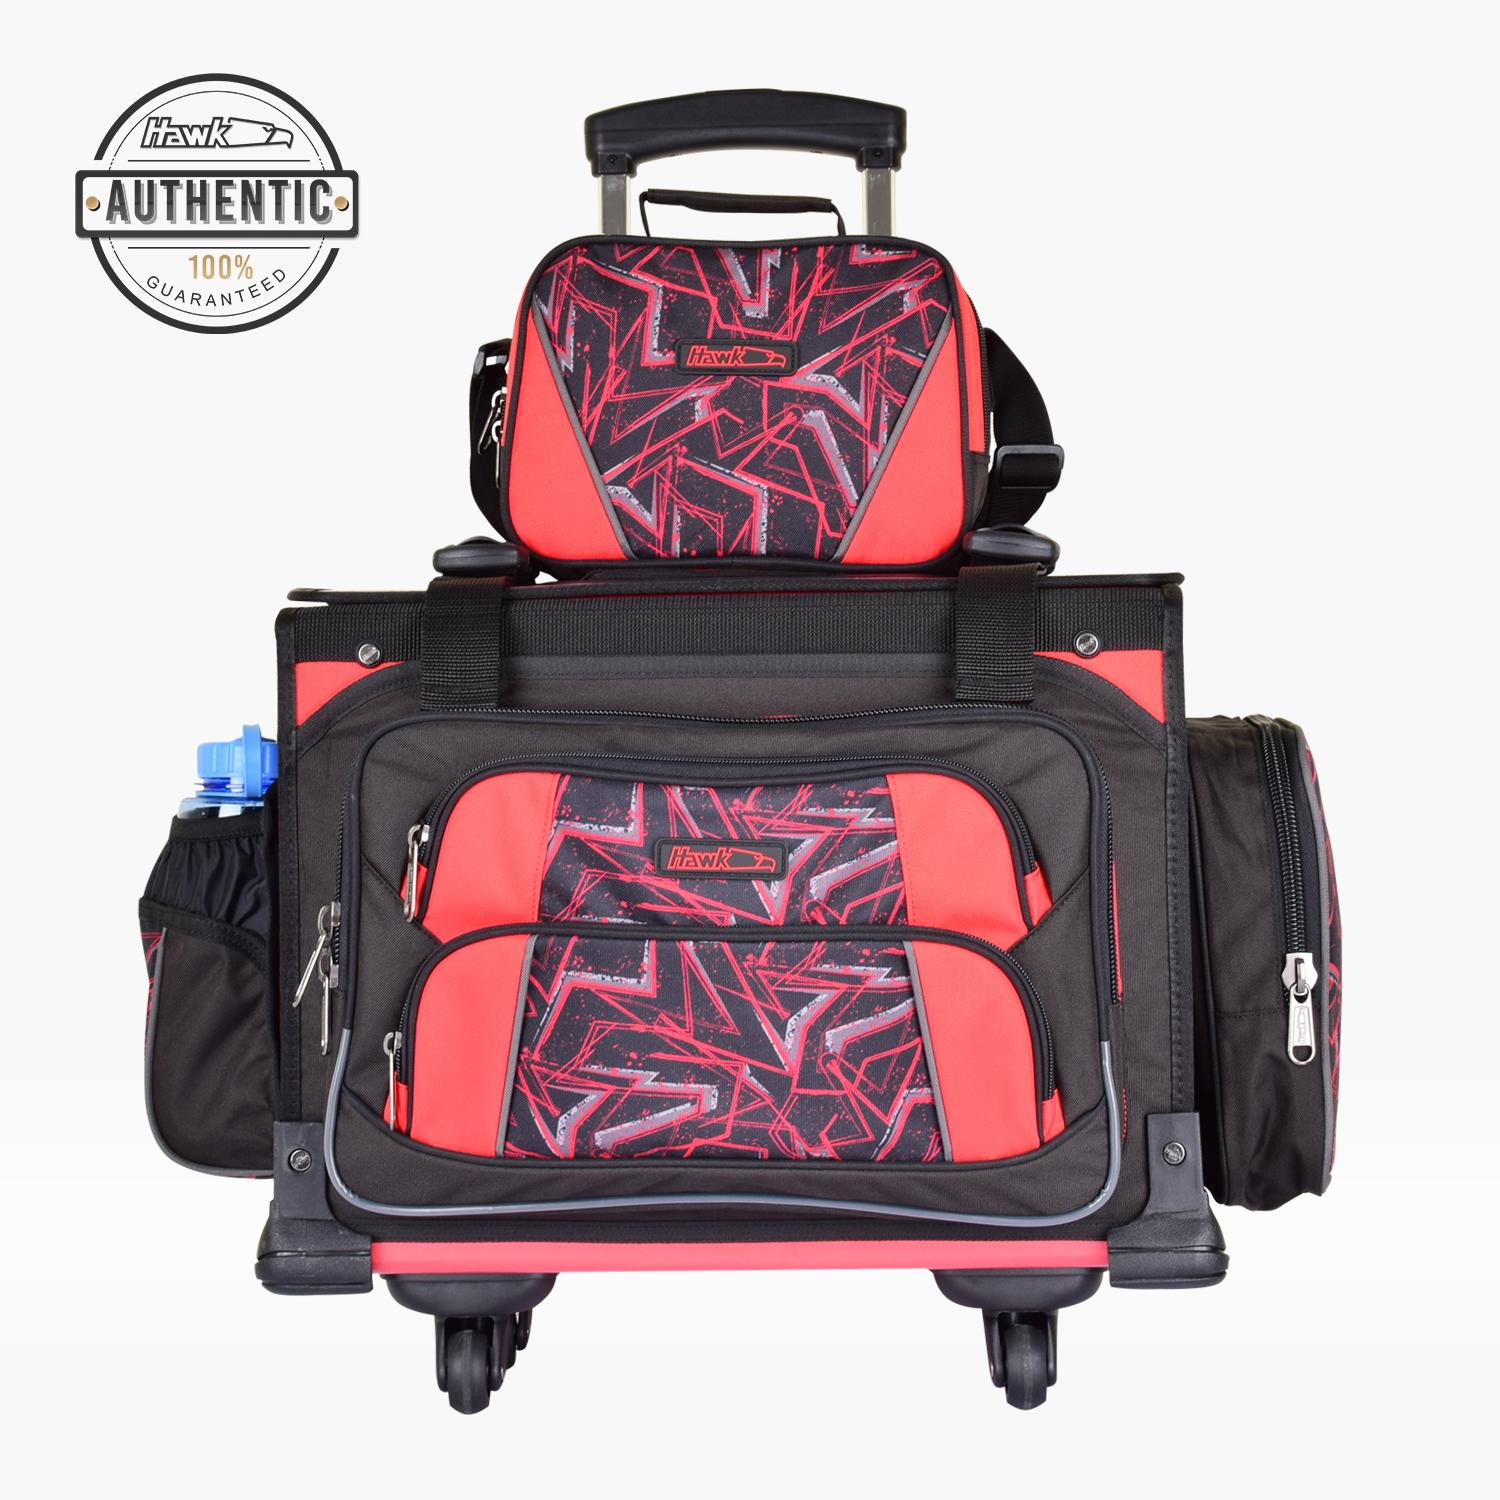 c710b10a6 Luggage for sale - Luggage Bag online brands, prices & reviews in ...